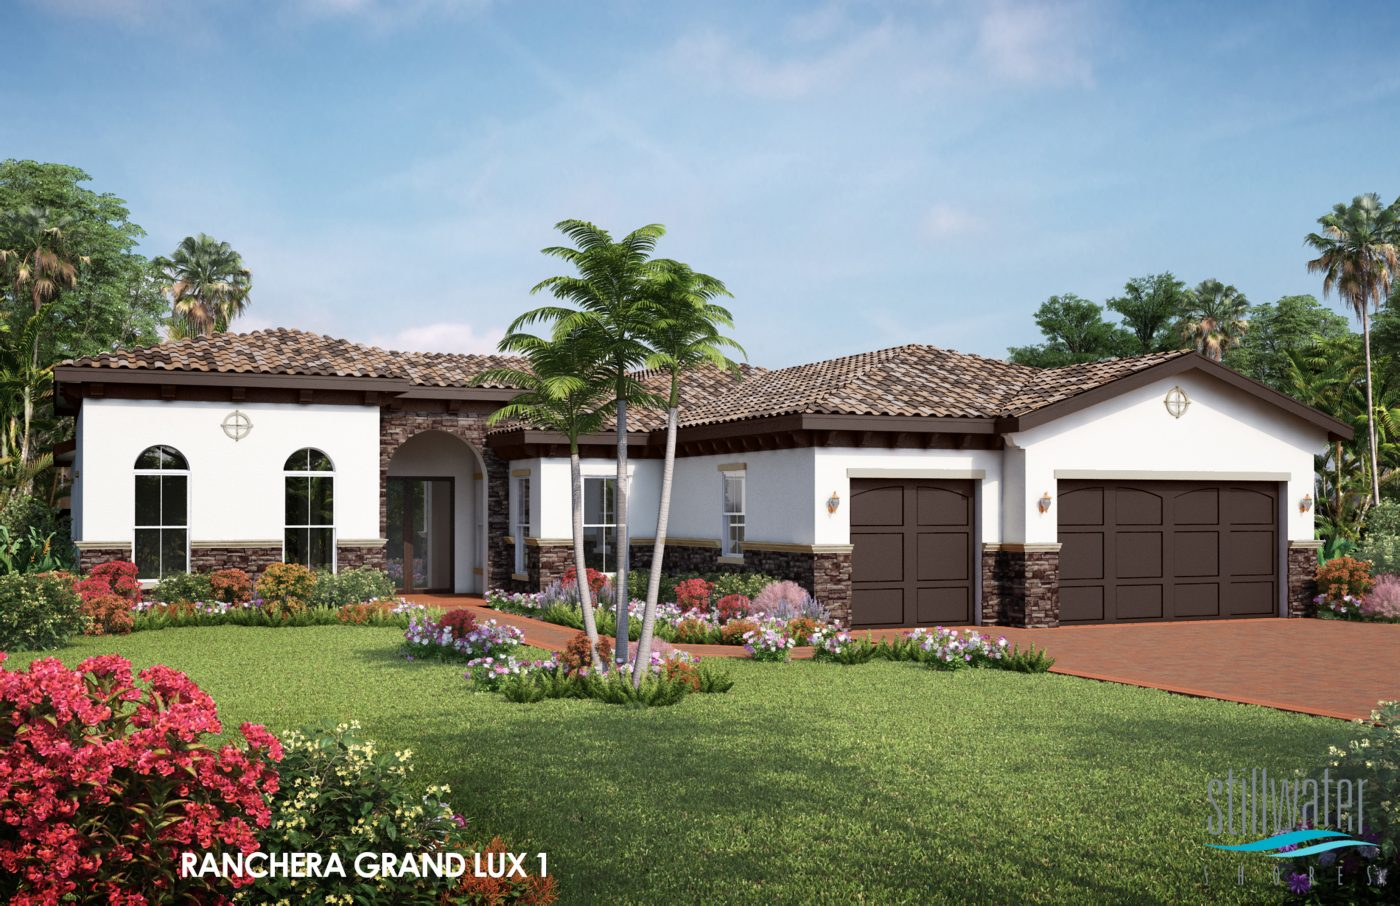 Photo of Ranchera Grand Lux Floor Plan